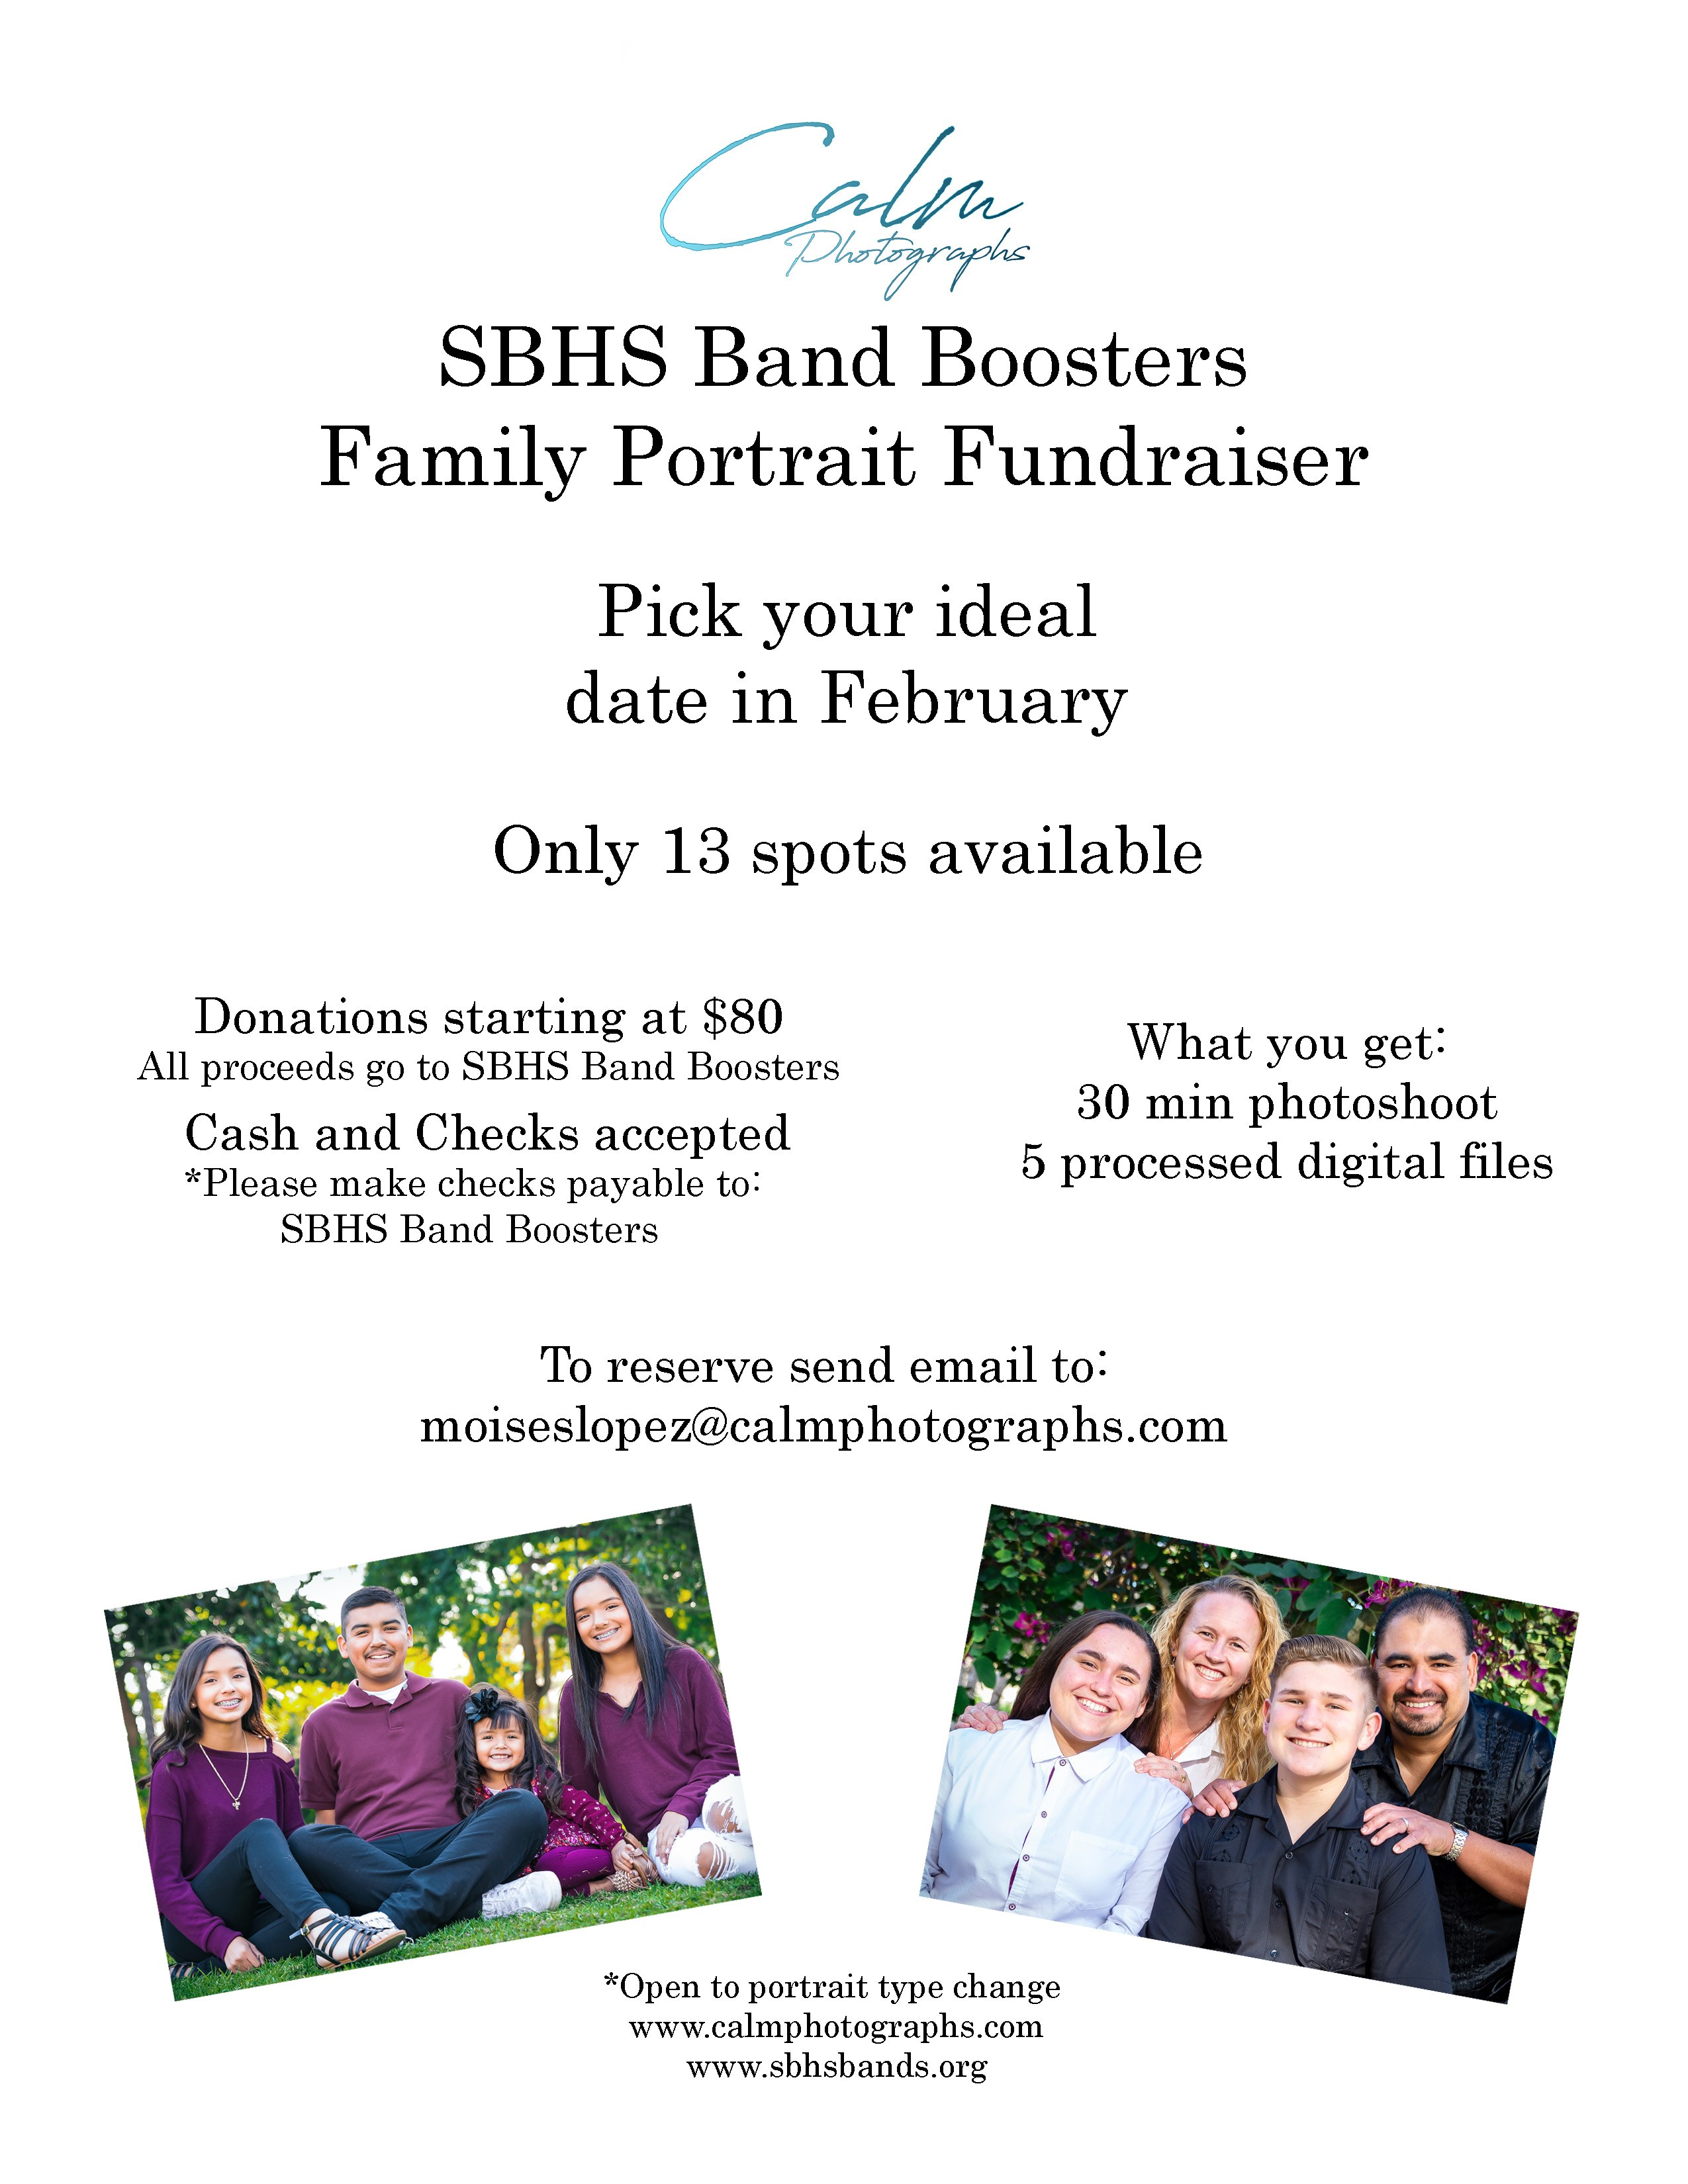 SBHS Band Booster Family Portrait Fundraiser